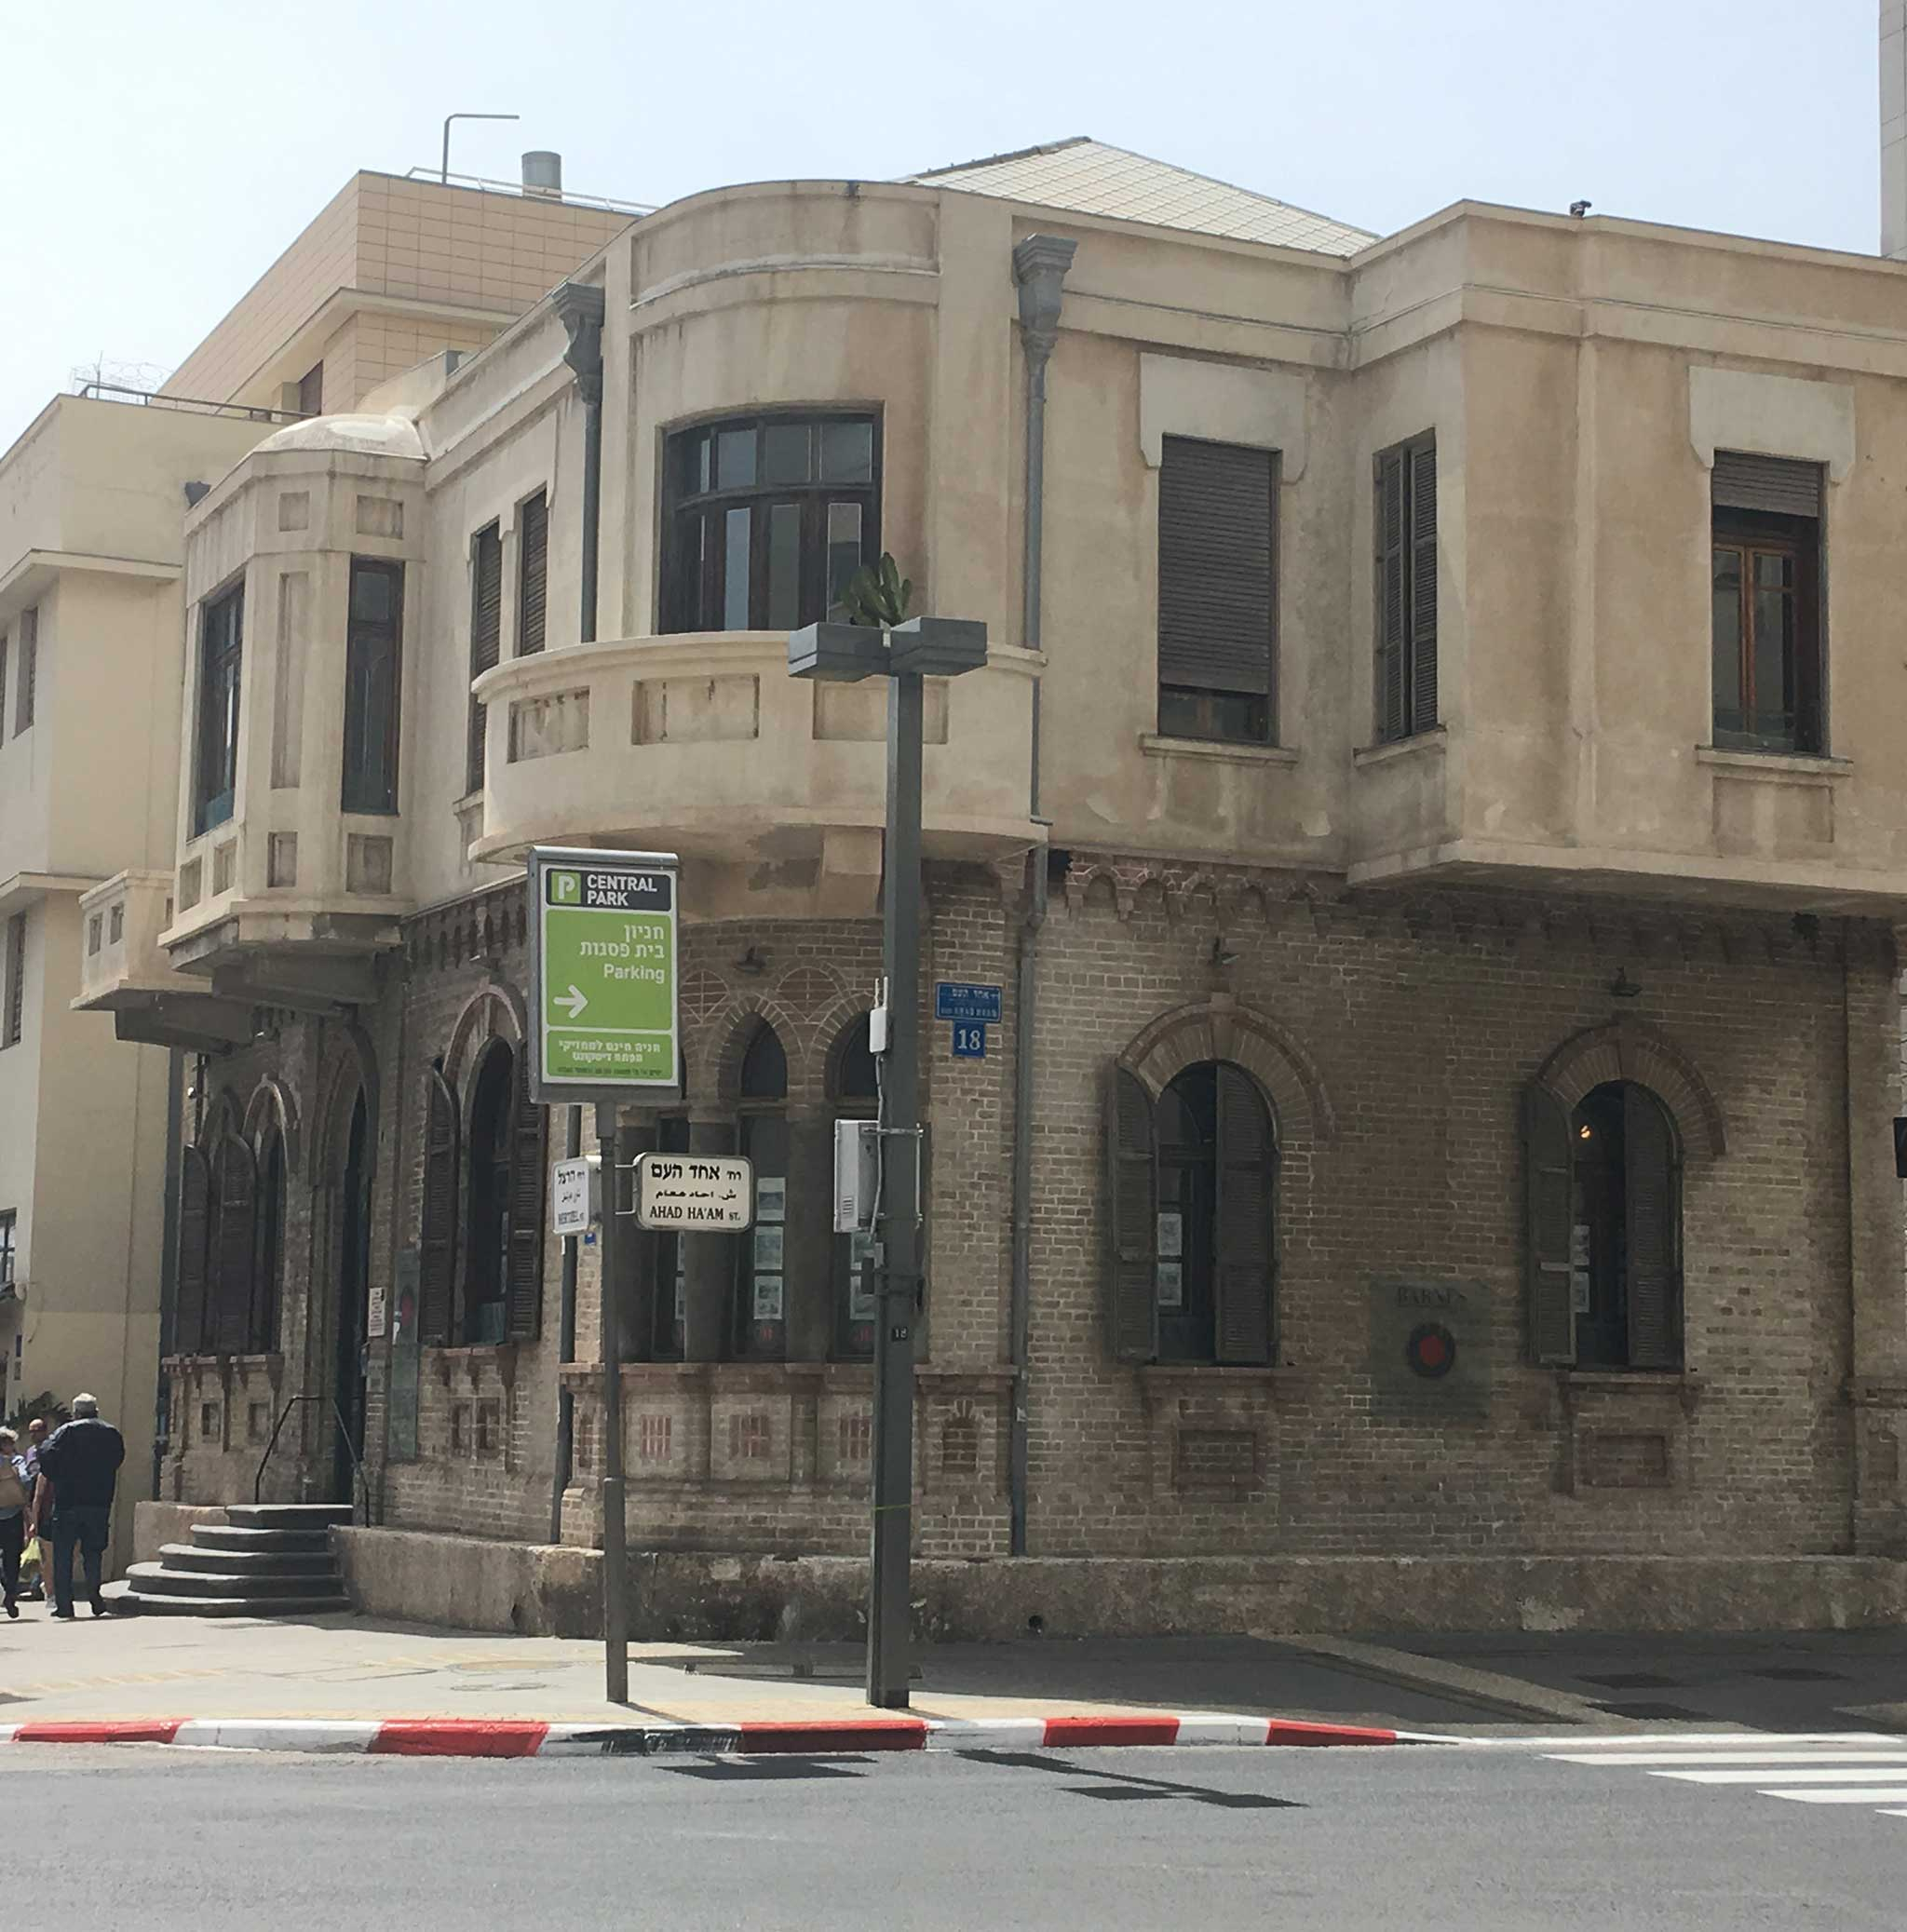 Weiss House on Tel Aviv audio tour The Trail of Independence: Tracing the origins of modern Tel Aviv